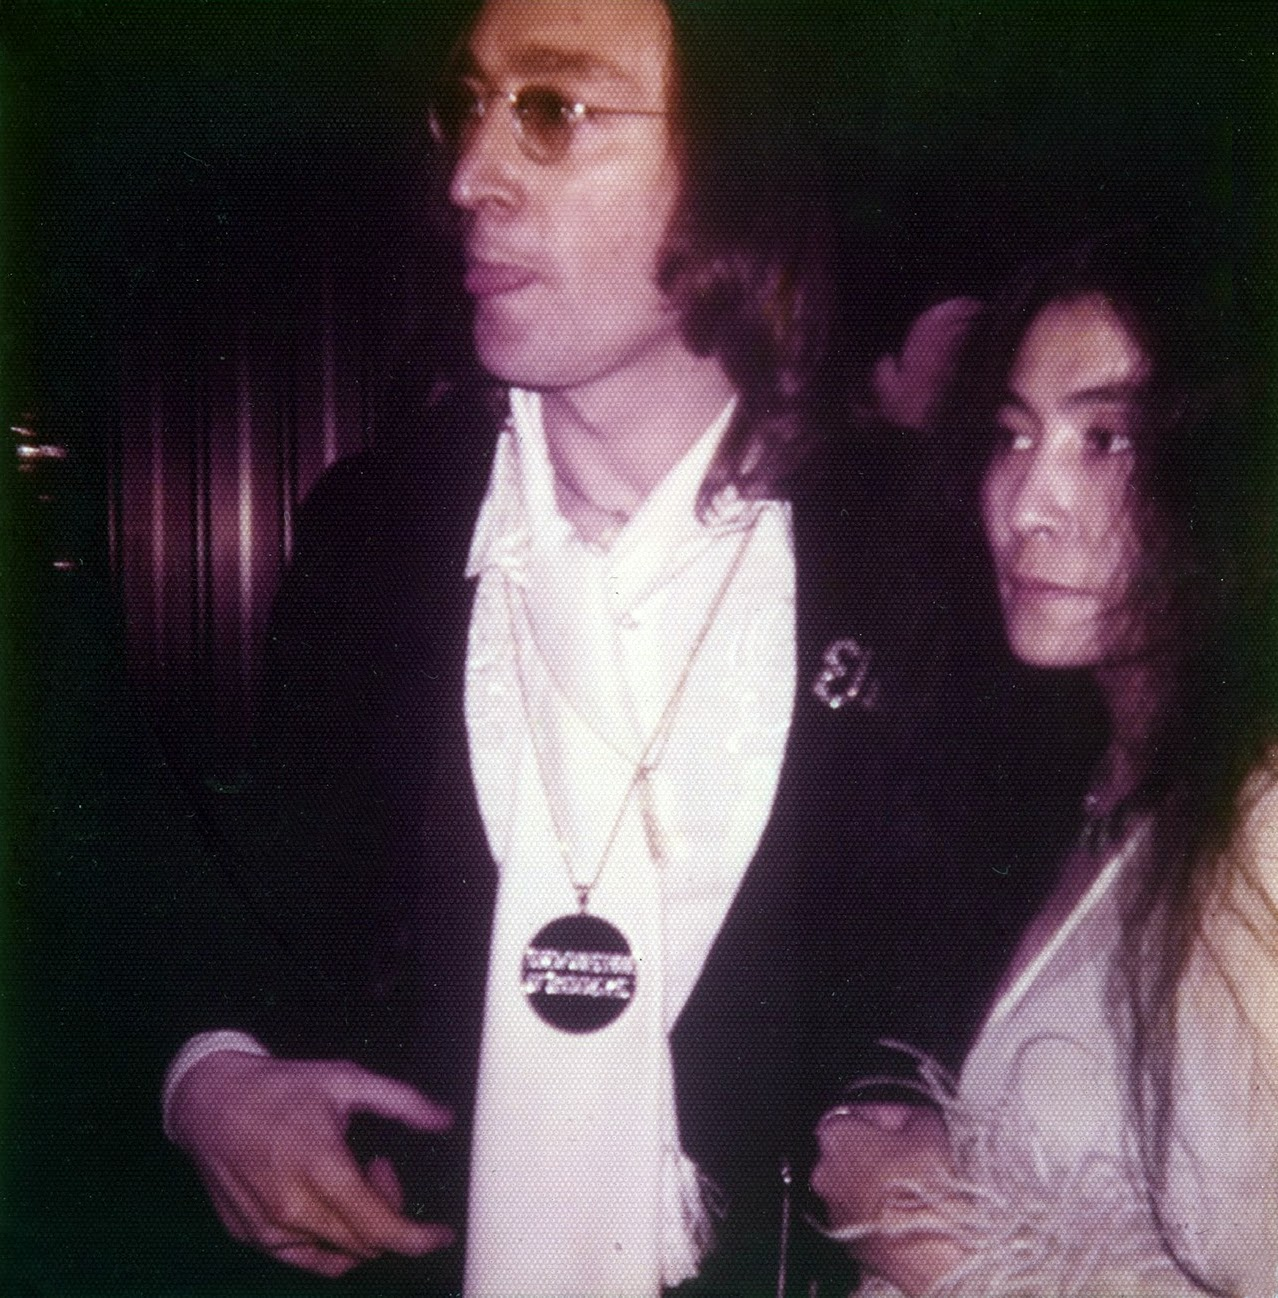 John Lennon and Yoko Ono attend the 1975 Grammy's (8)